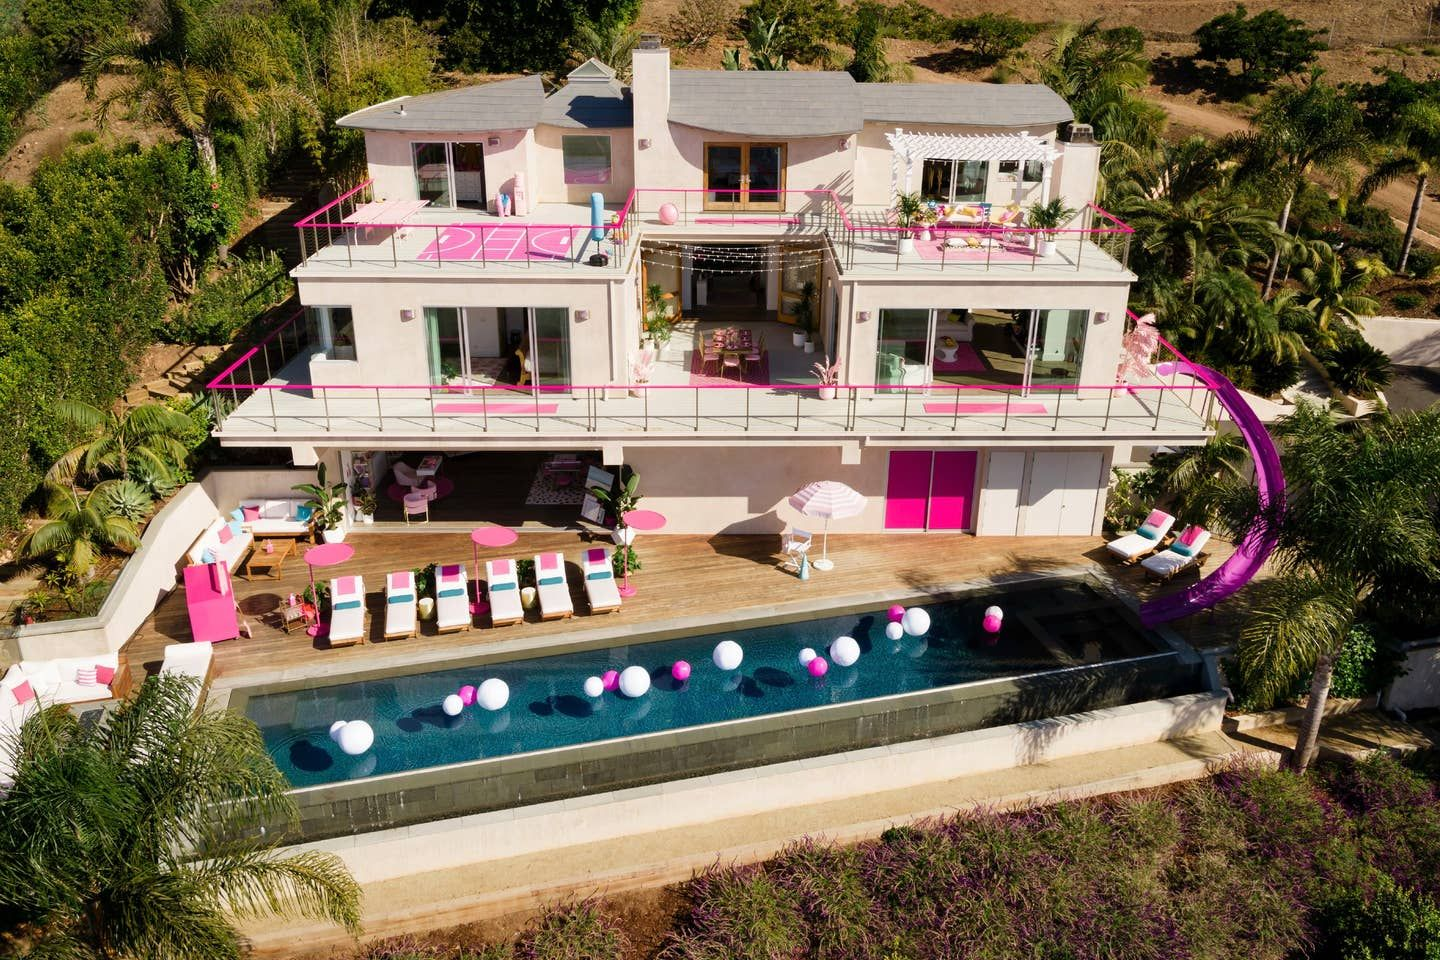 Barbie's Malibu Dreamhouse Is Now Available on Airbnb for Just $60 a Night